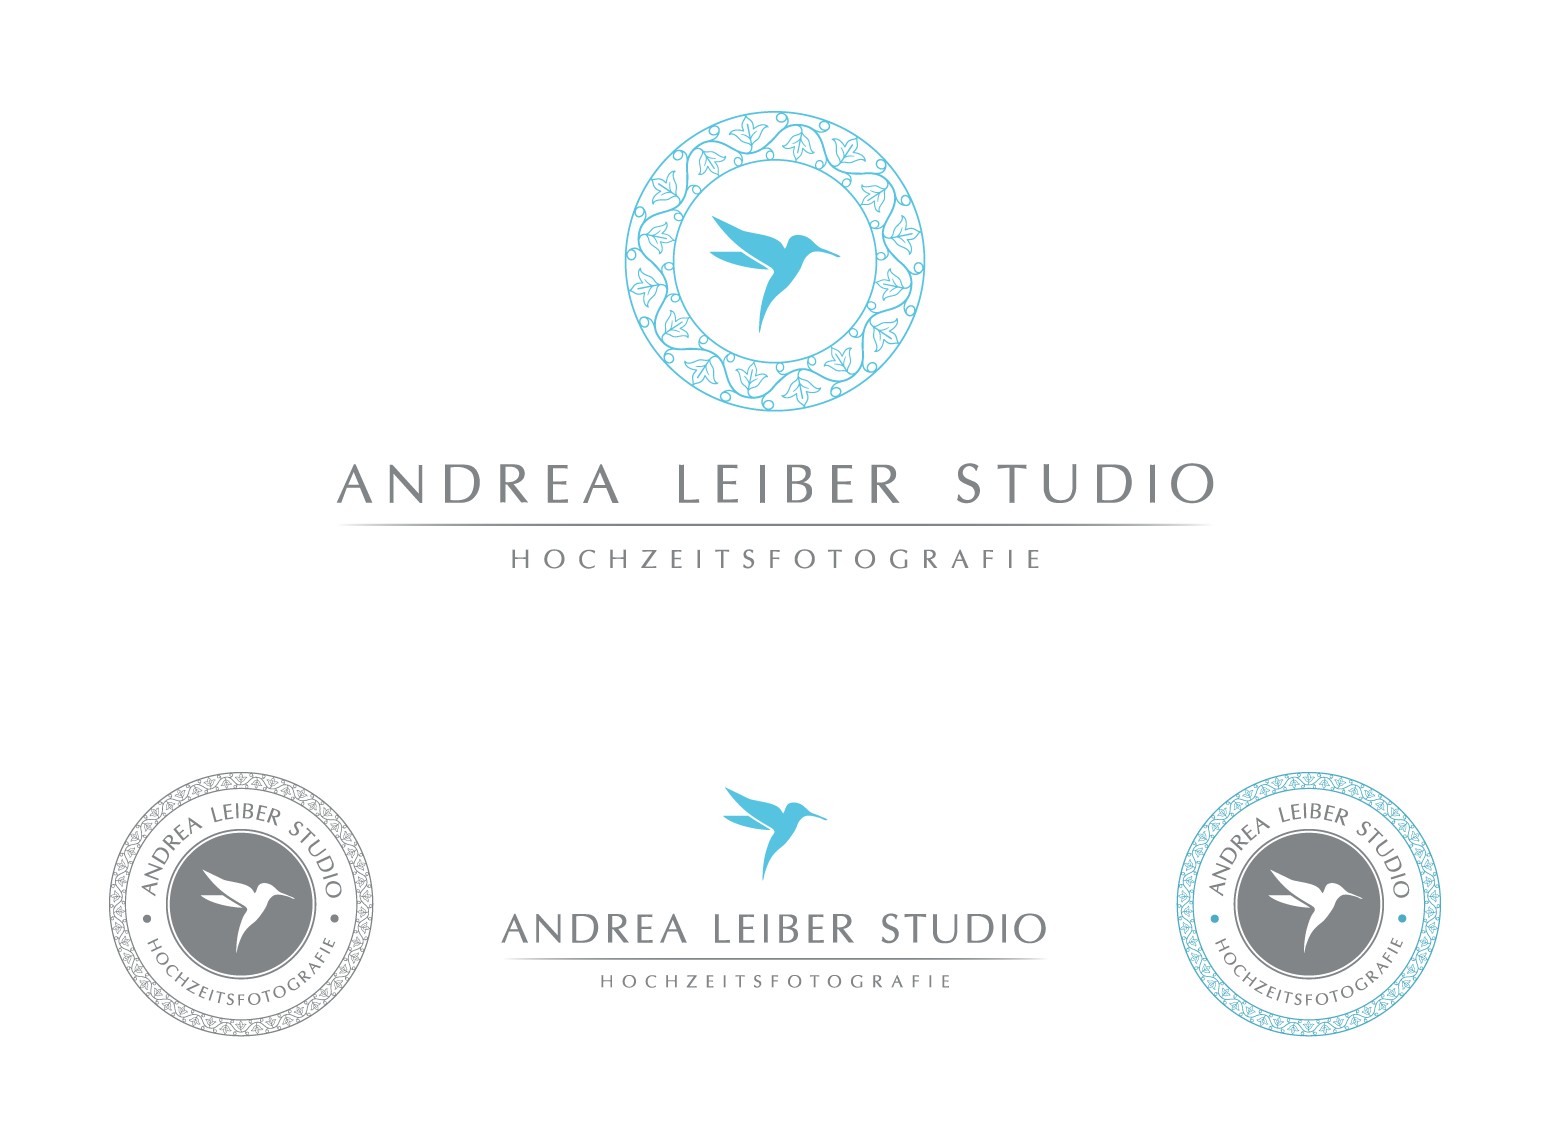 Create an elegant logo and business card for my high fashion and wedding photo studio